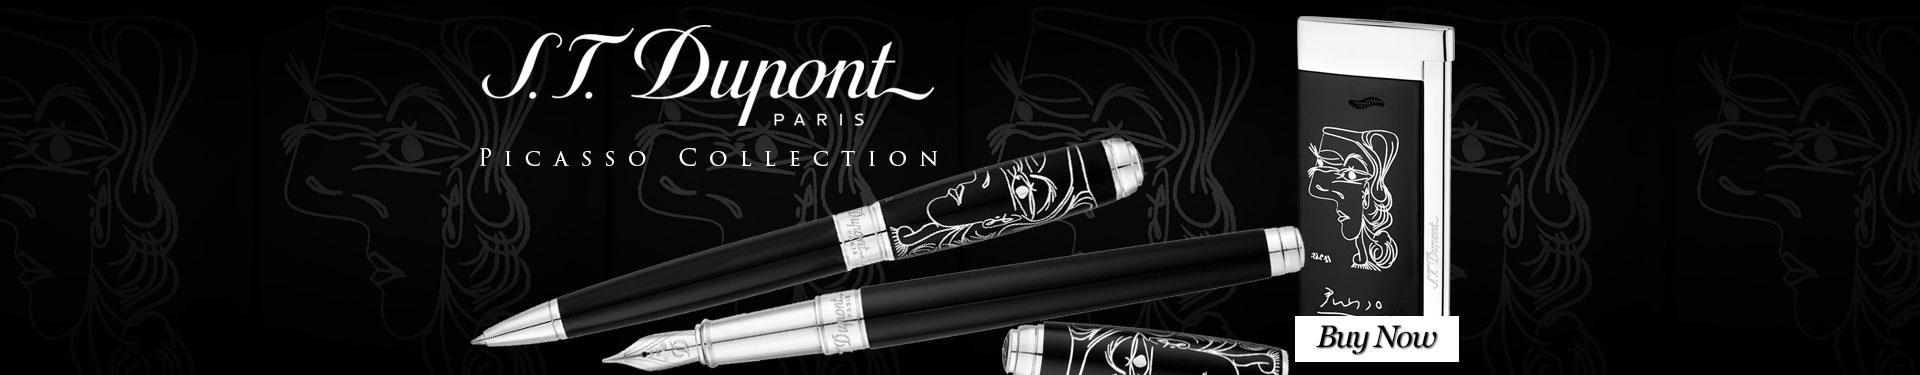 Dupont Limited Edition Picasso Collection